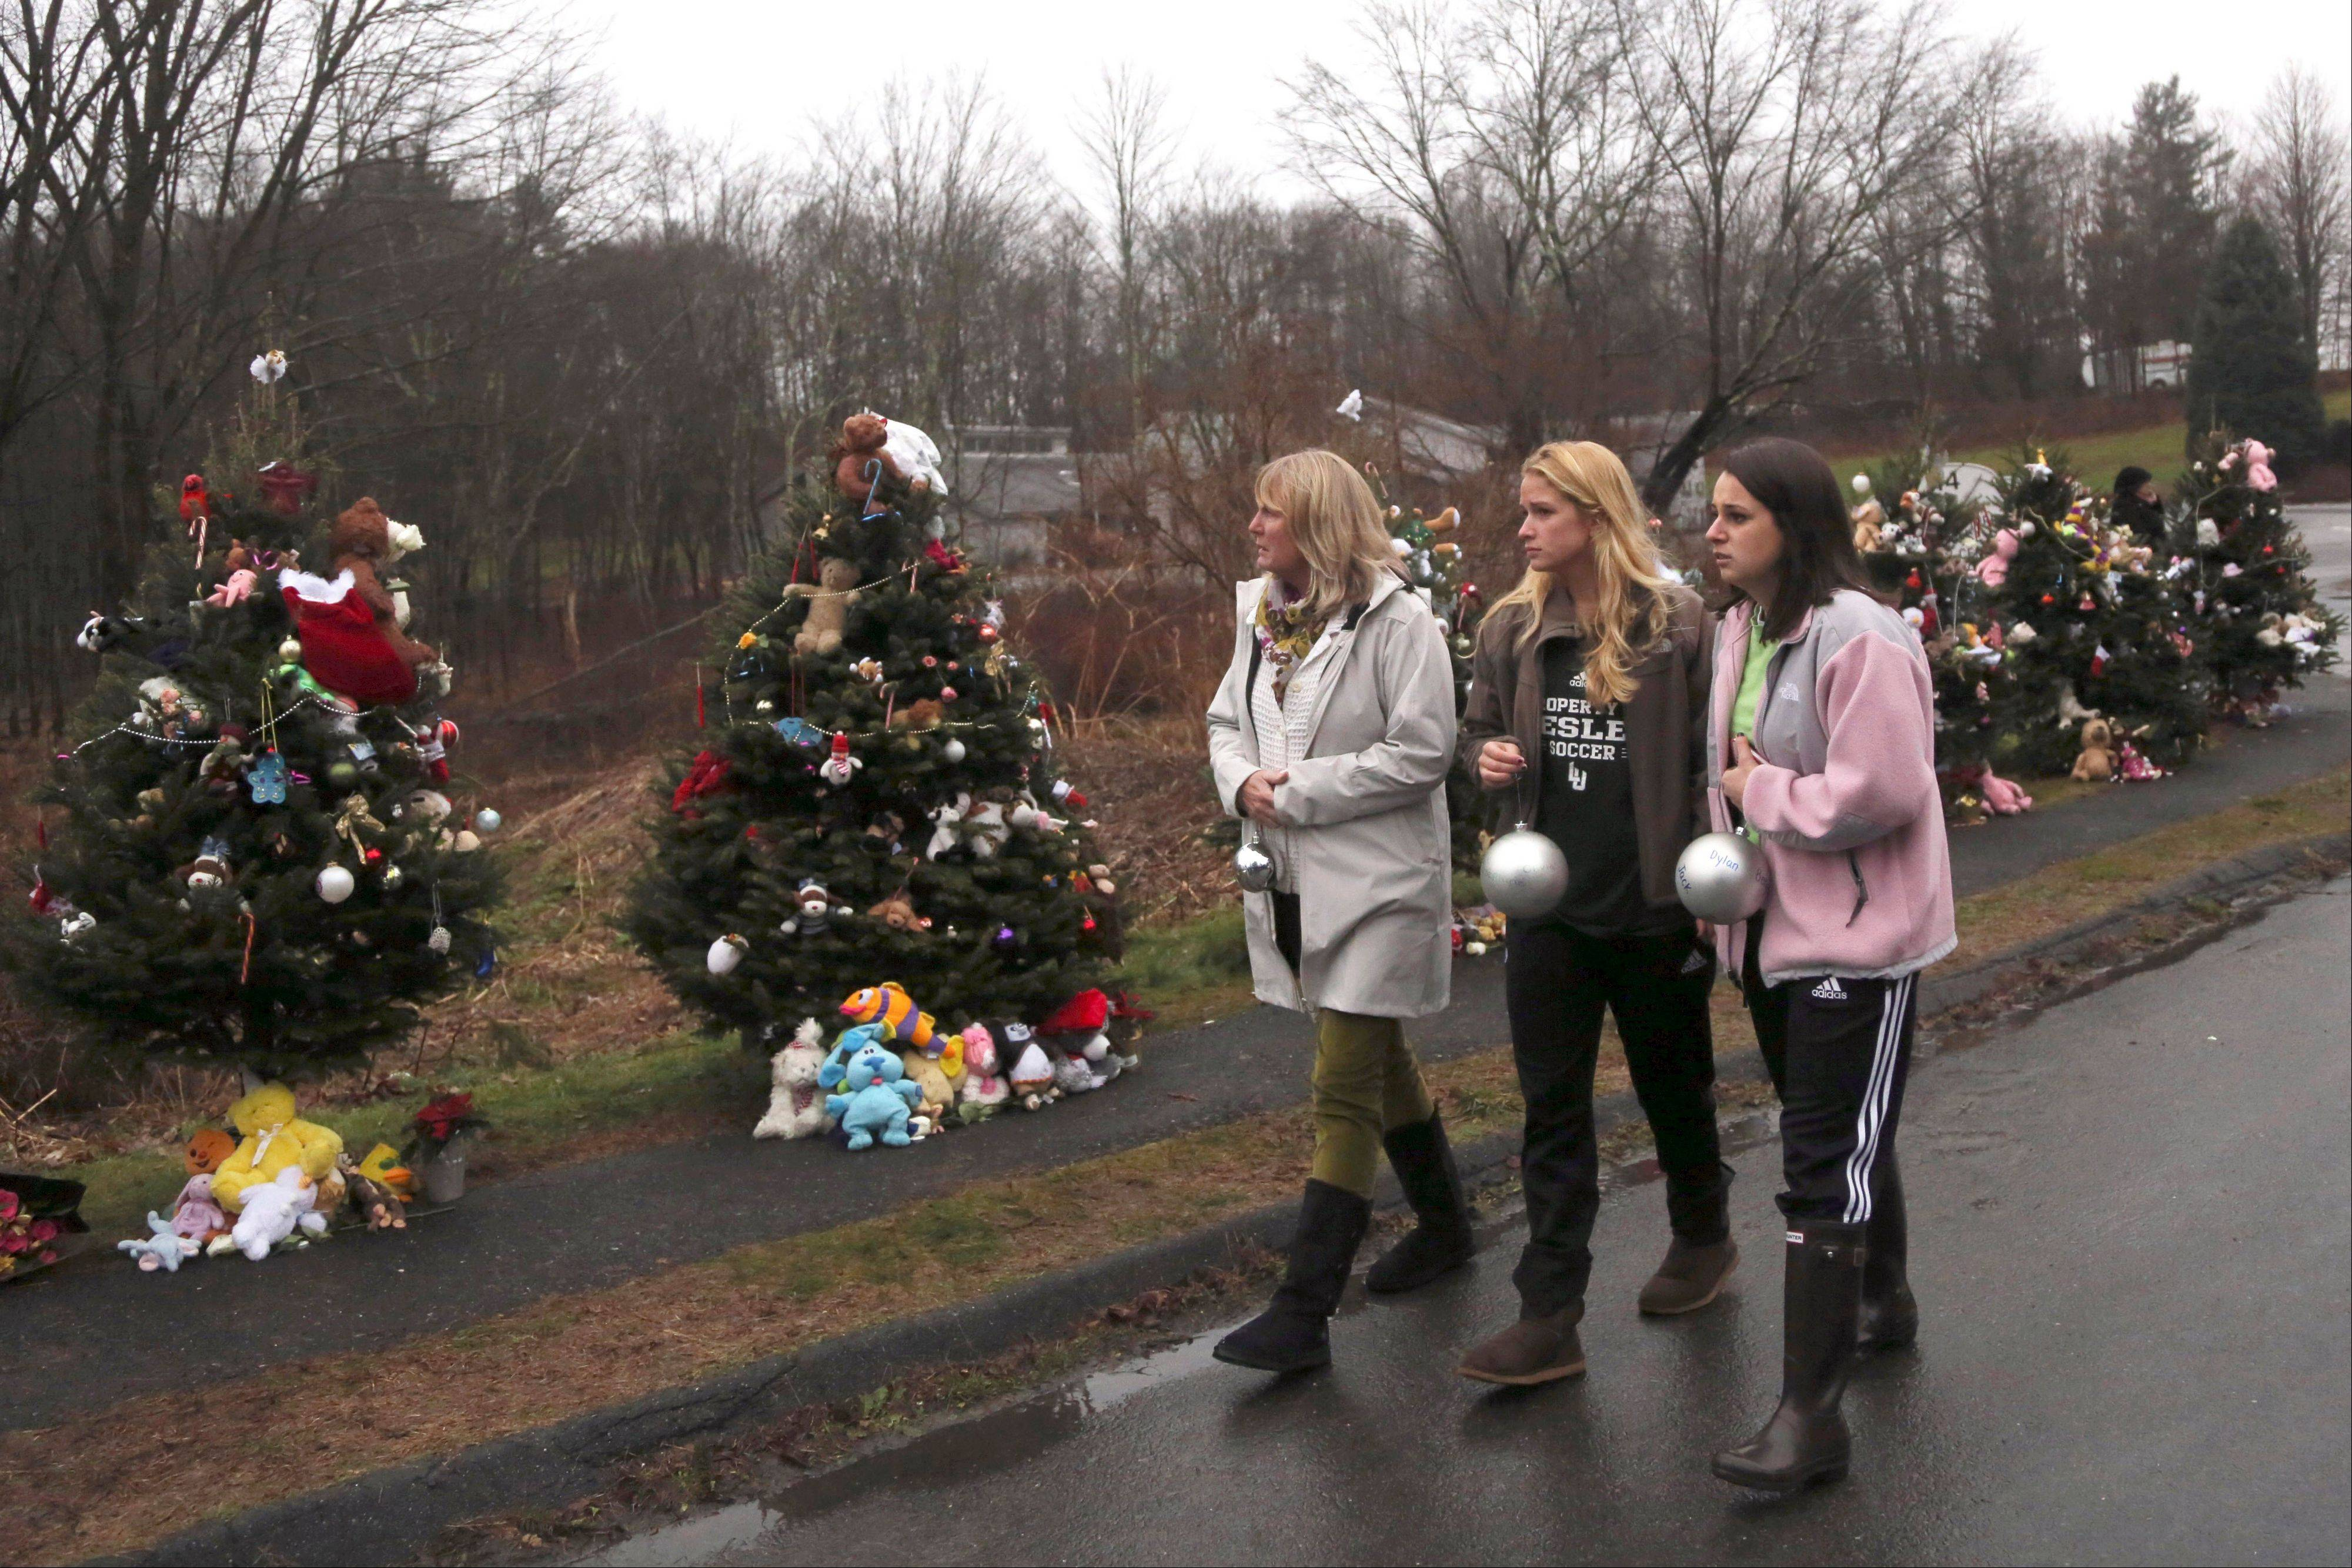 In this Monday, Dec. 17, 2012 file photo, mourners carry ornaments to decorate the Christmas trees at one of the makeshift memorials for the Sandy Hook Elementary School shooting victims, in Newtown, Conn. In the wake of the shooting, the grieving town is trying to find meaning in Christmas.